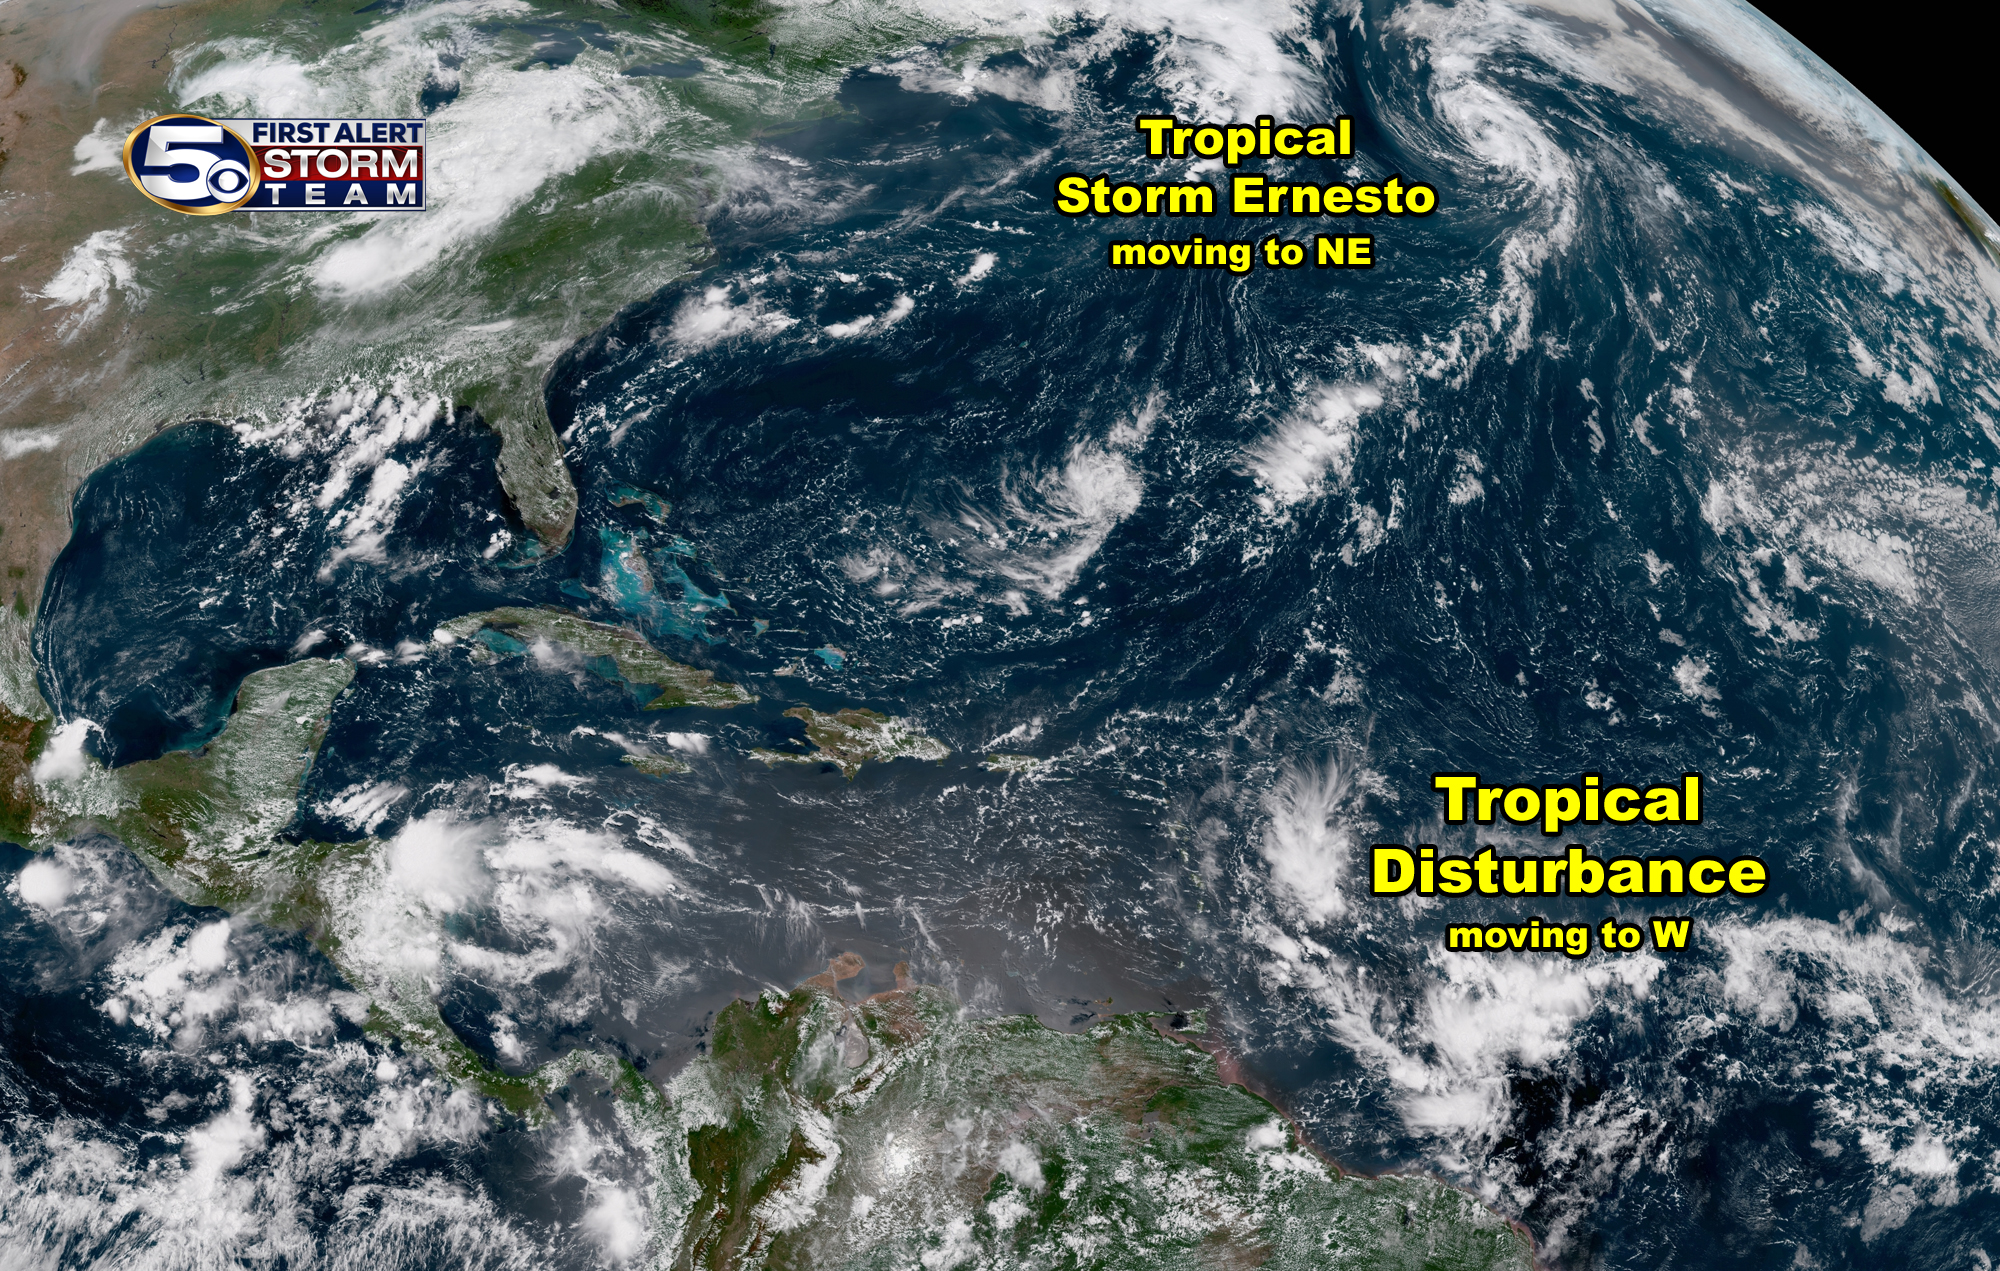 Tropical Disturbance satellite